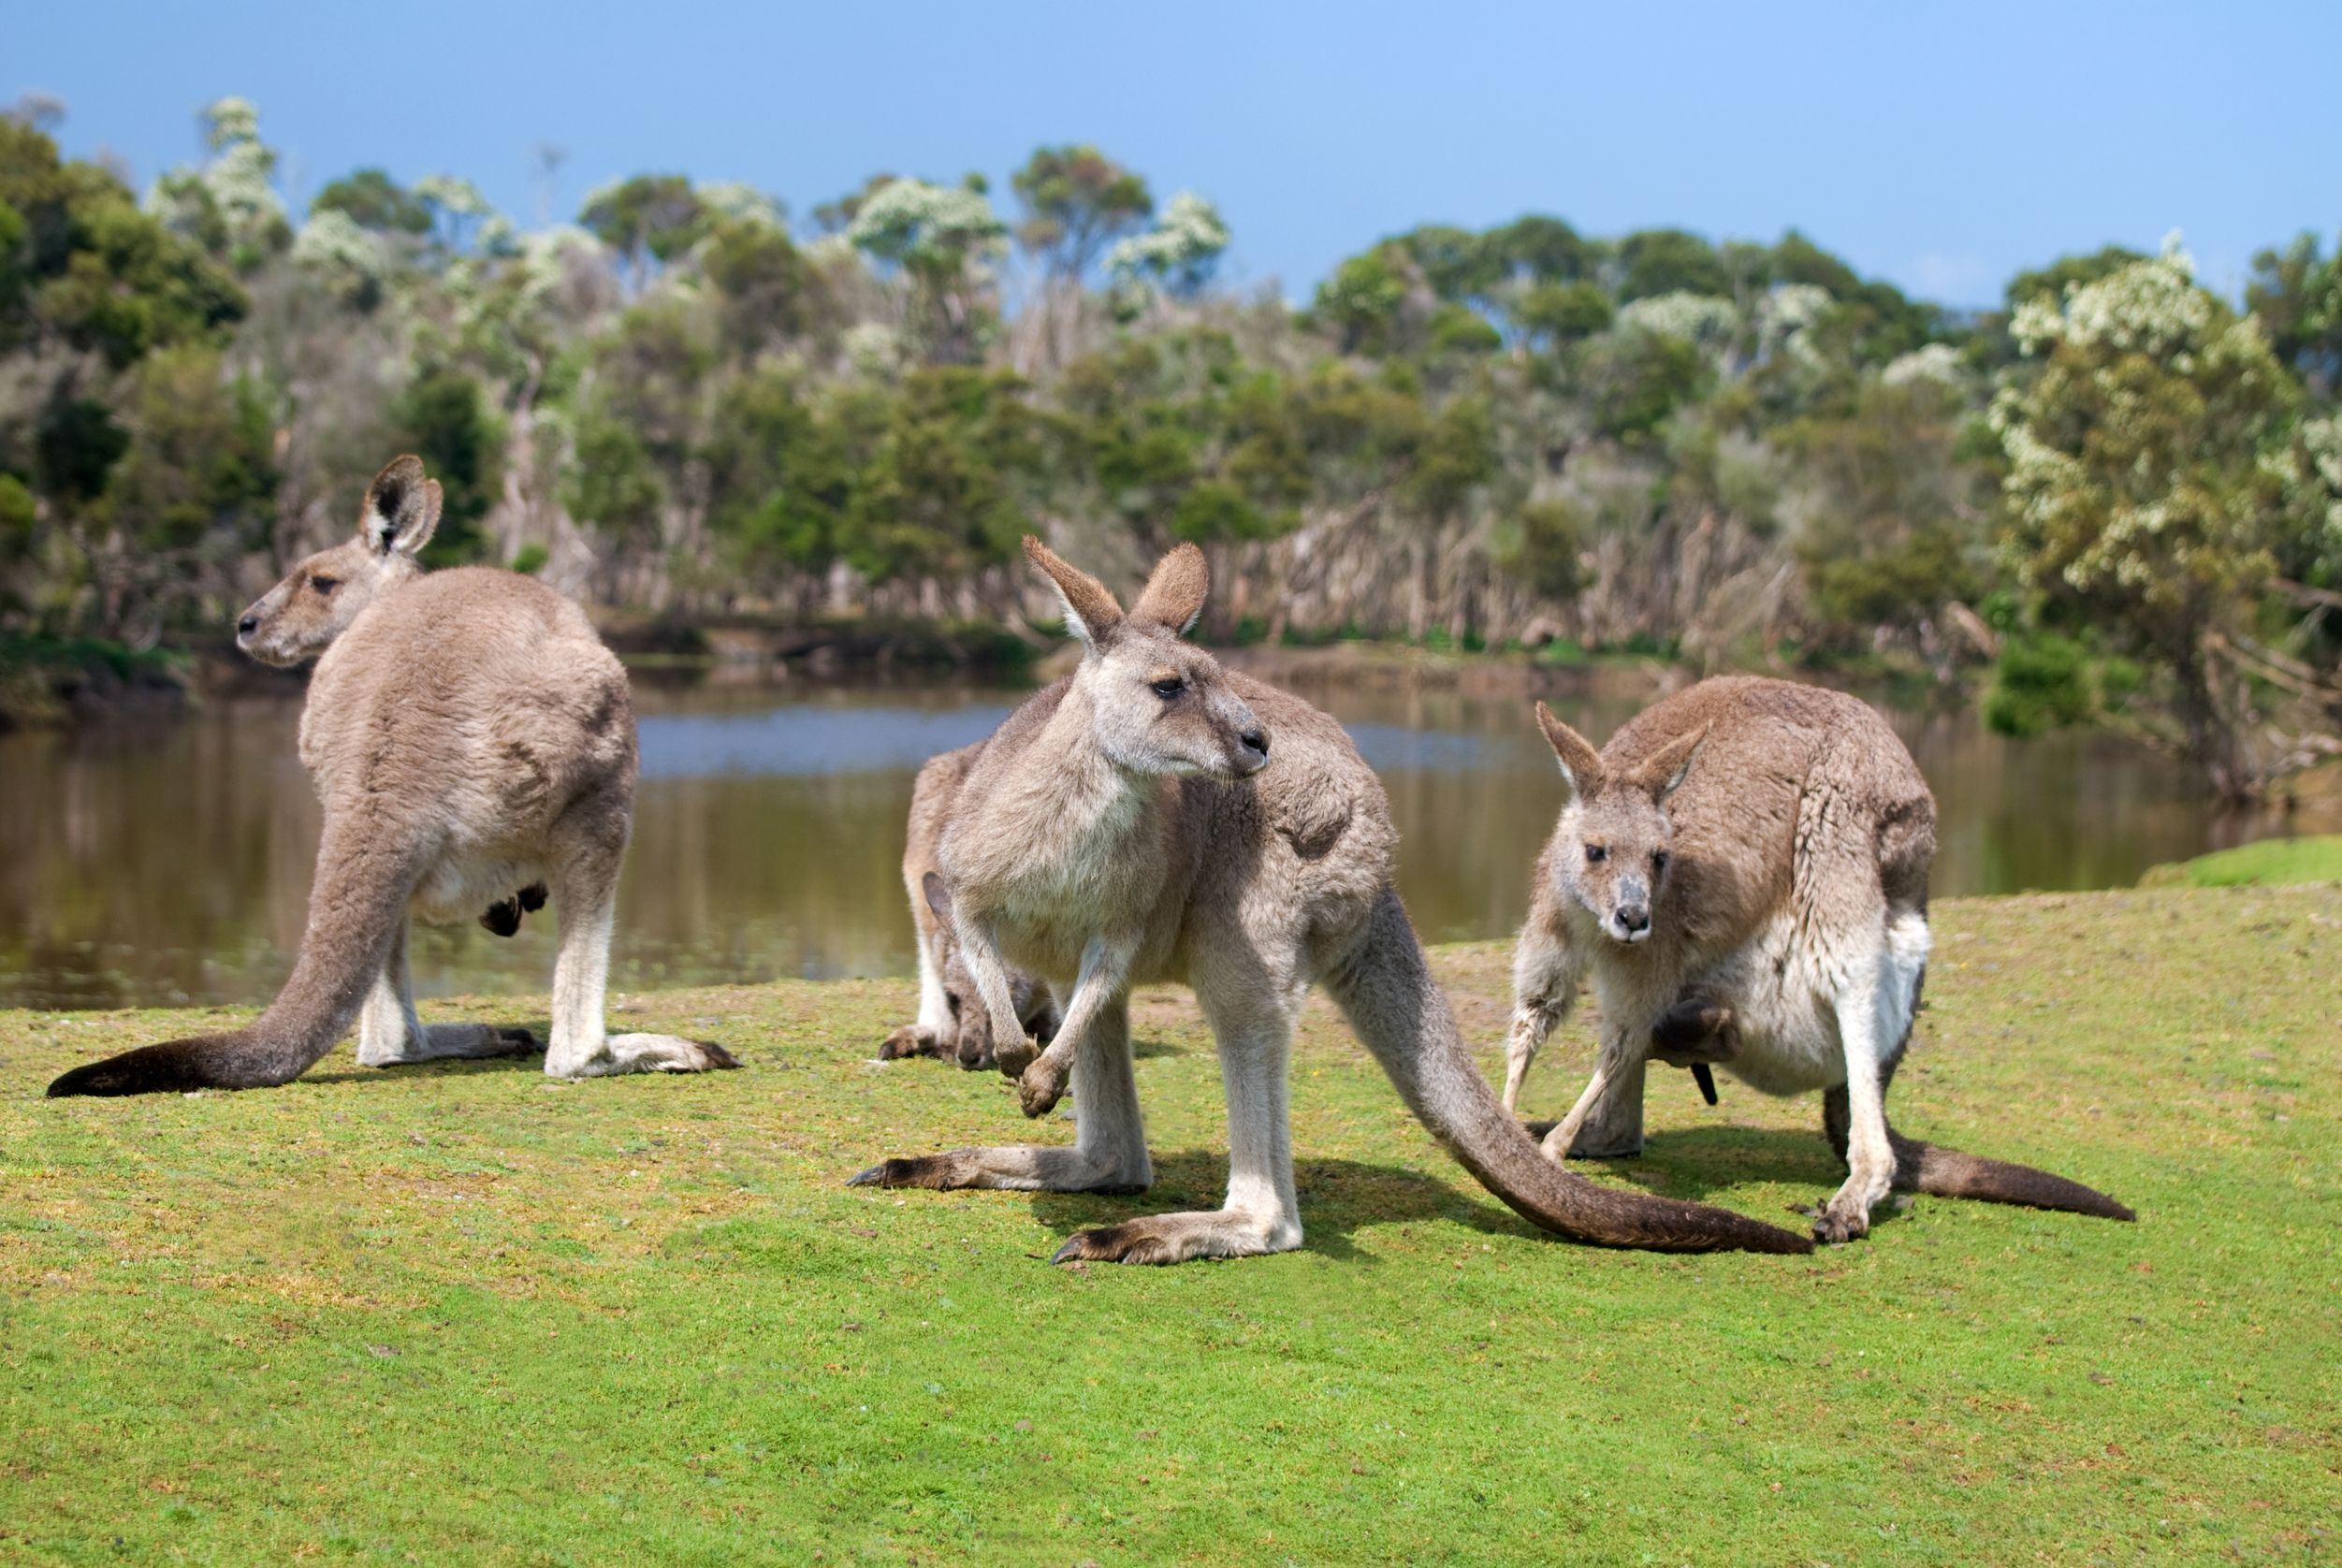 australia kangaroos by lake 123rf